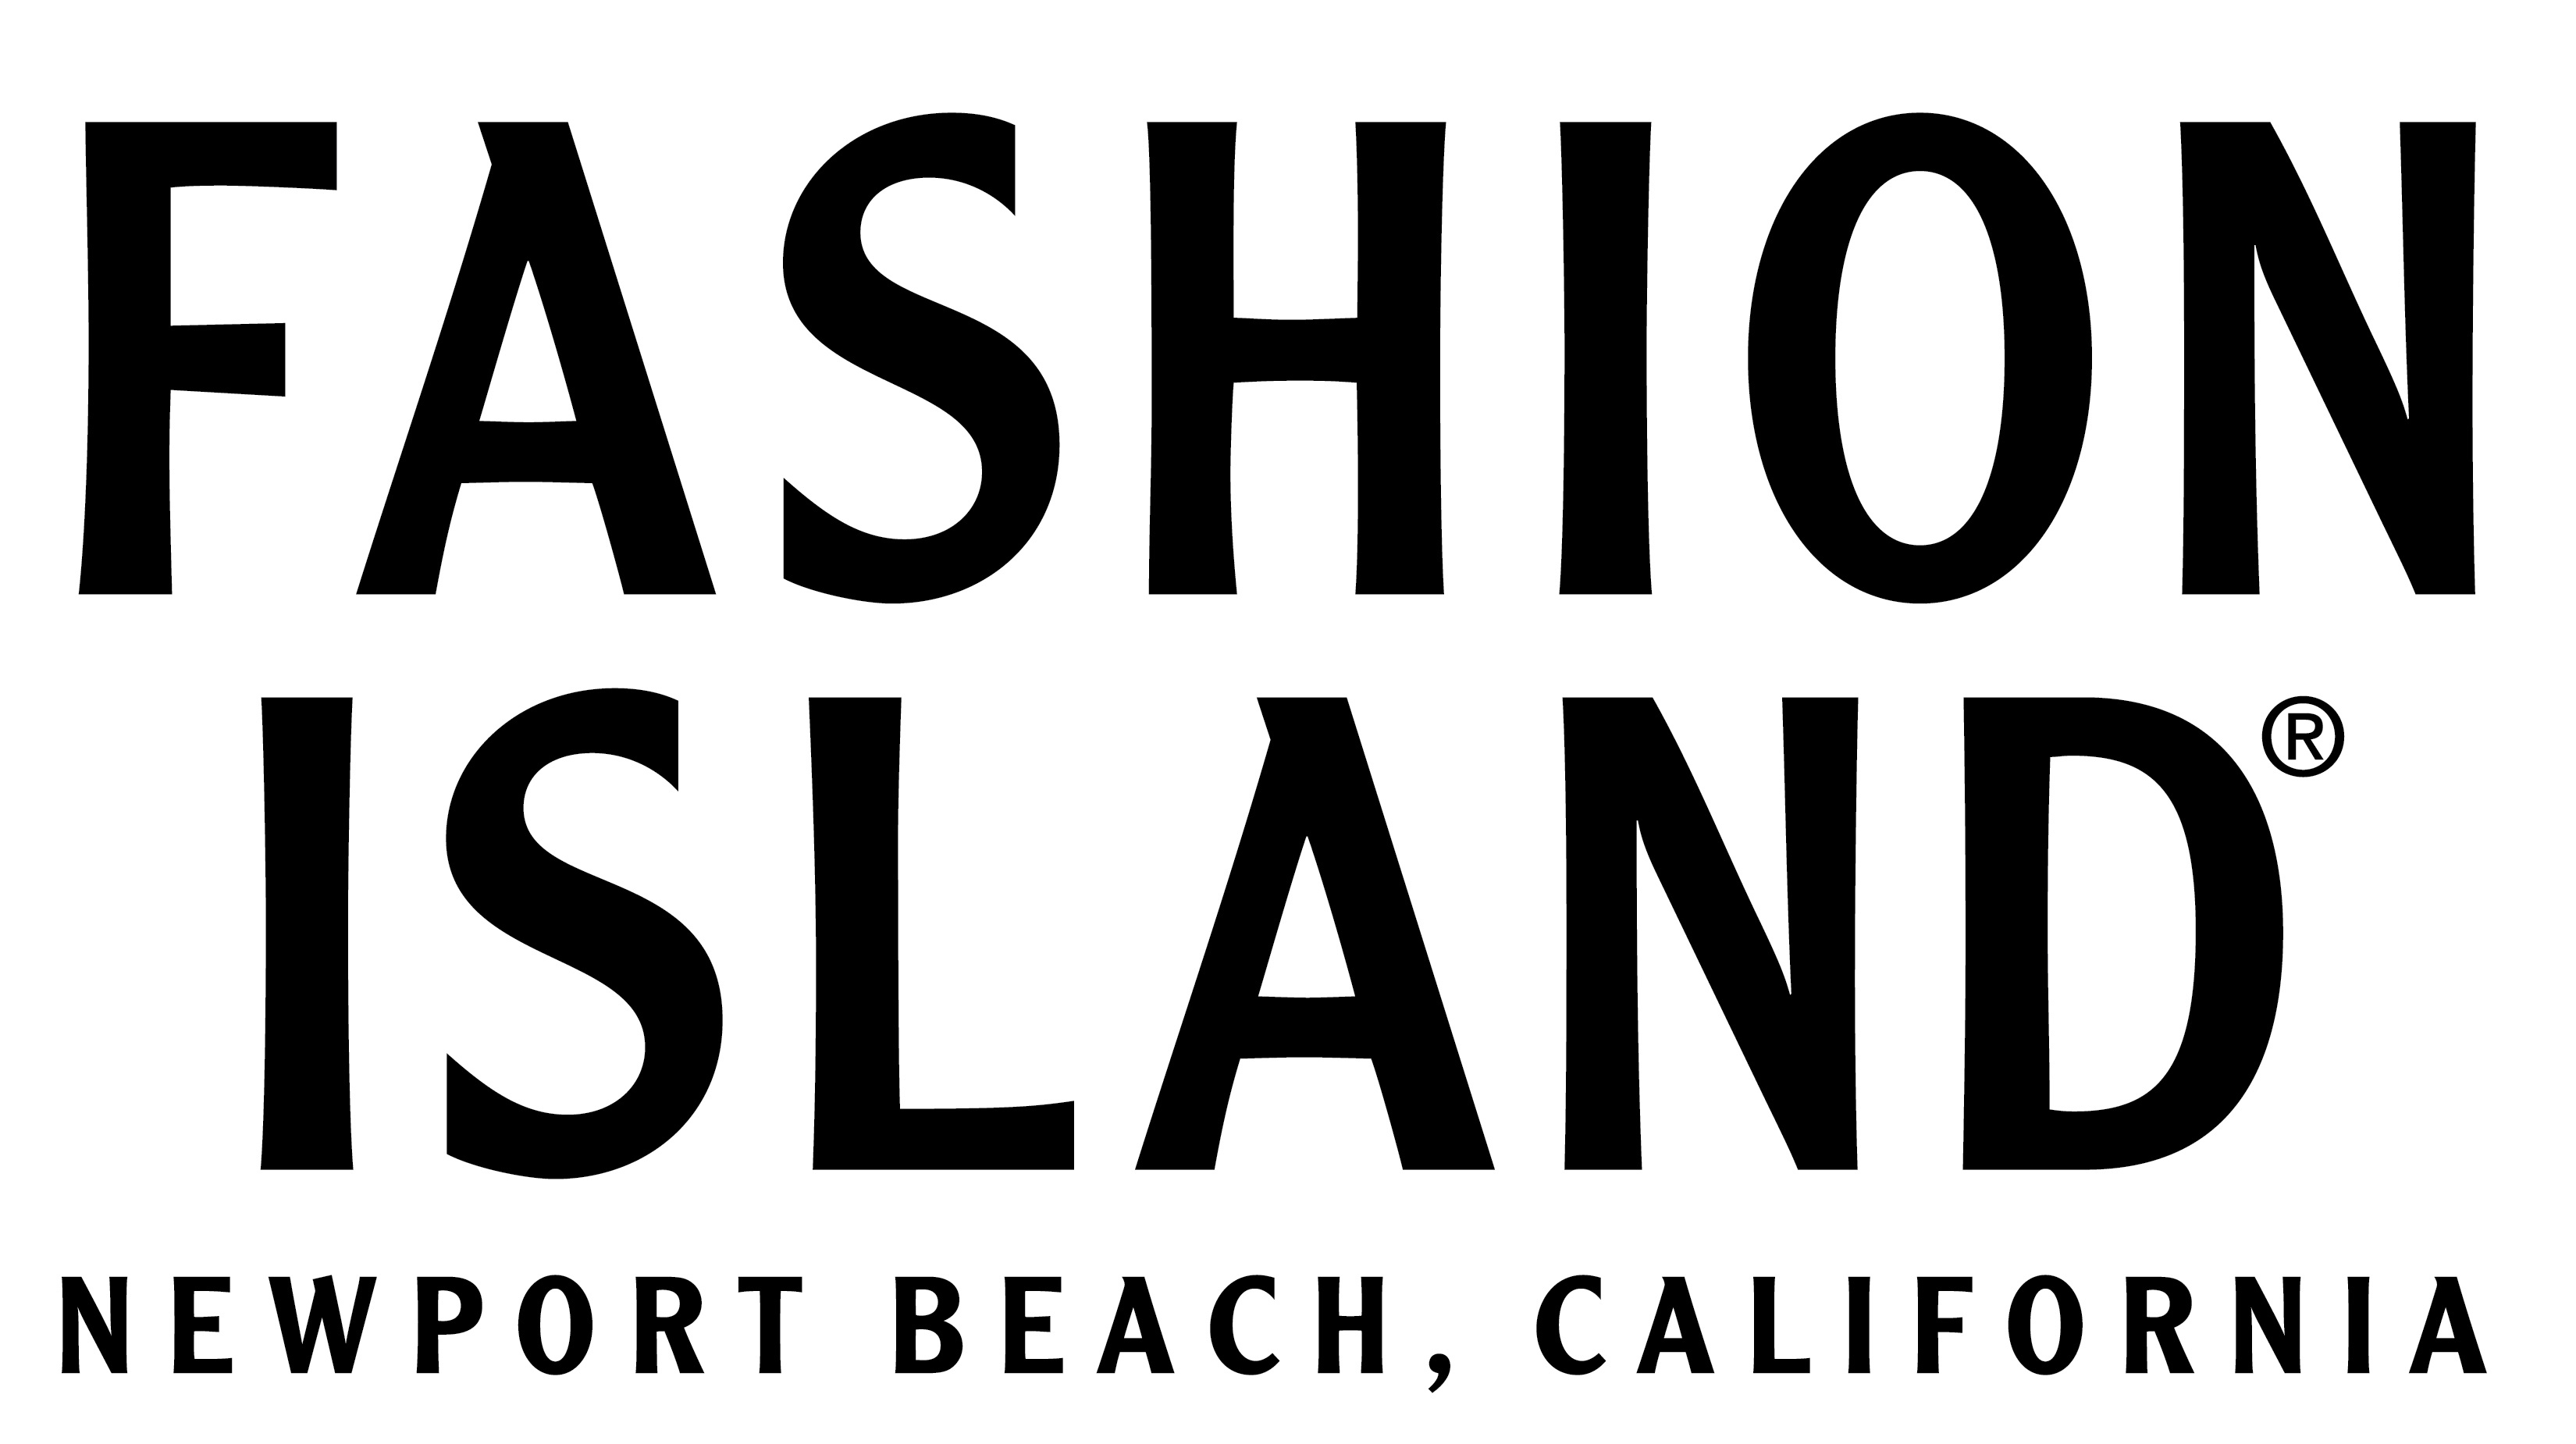 Fashion Island/Irvine Spectrum Center logo